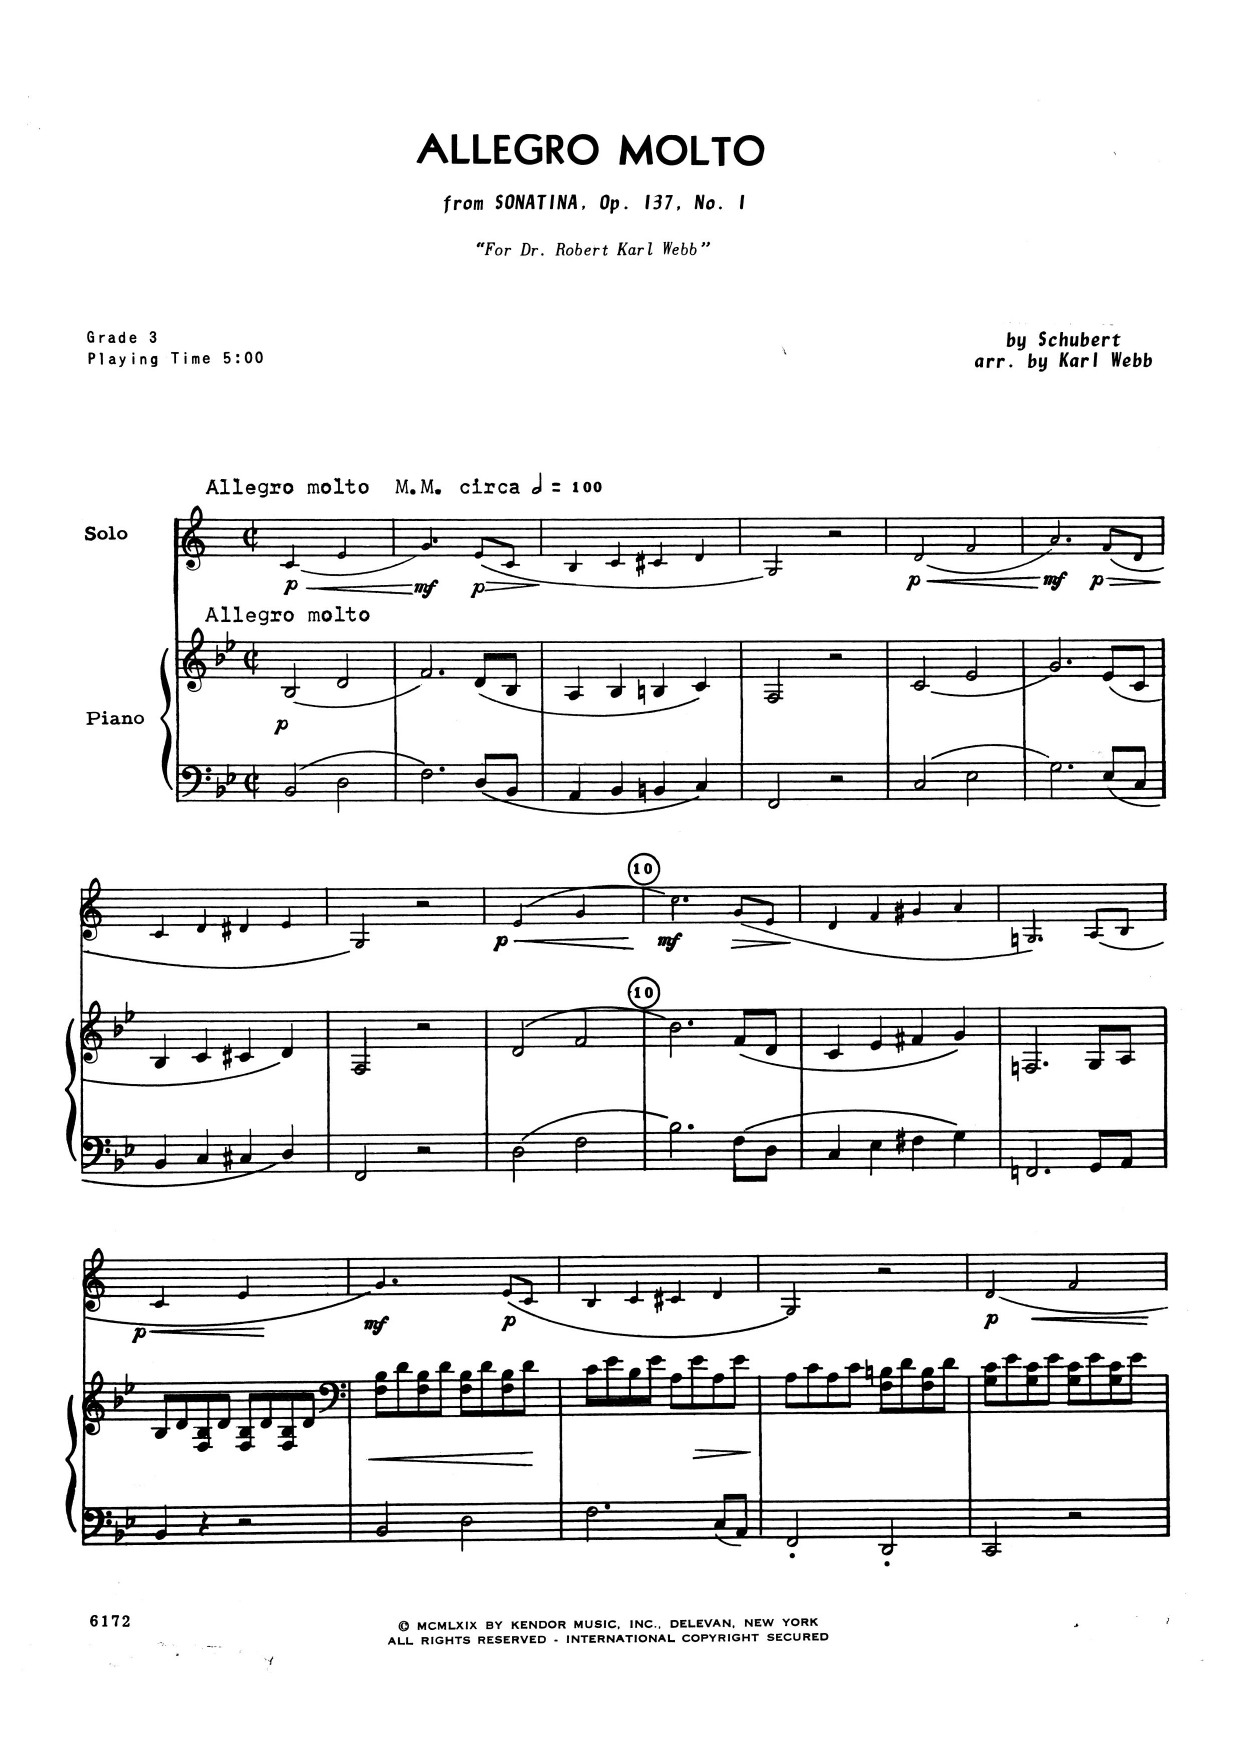 Allegro Molto (from Sonatina, Opus 137, No. 1) - Piano Accompaniment Sheet Music